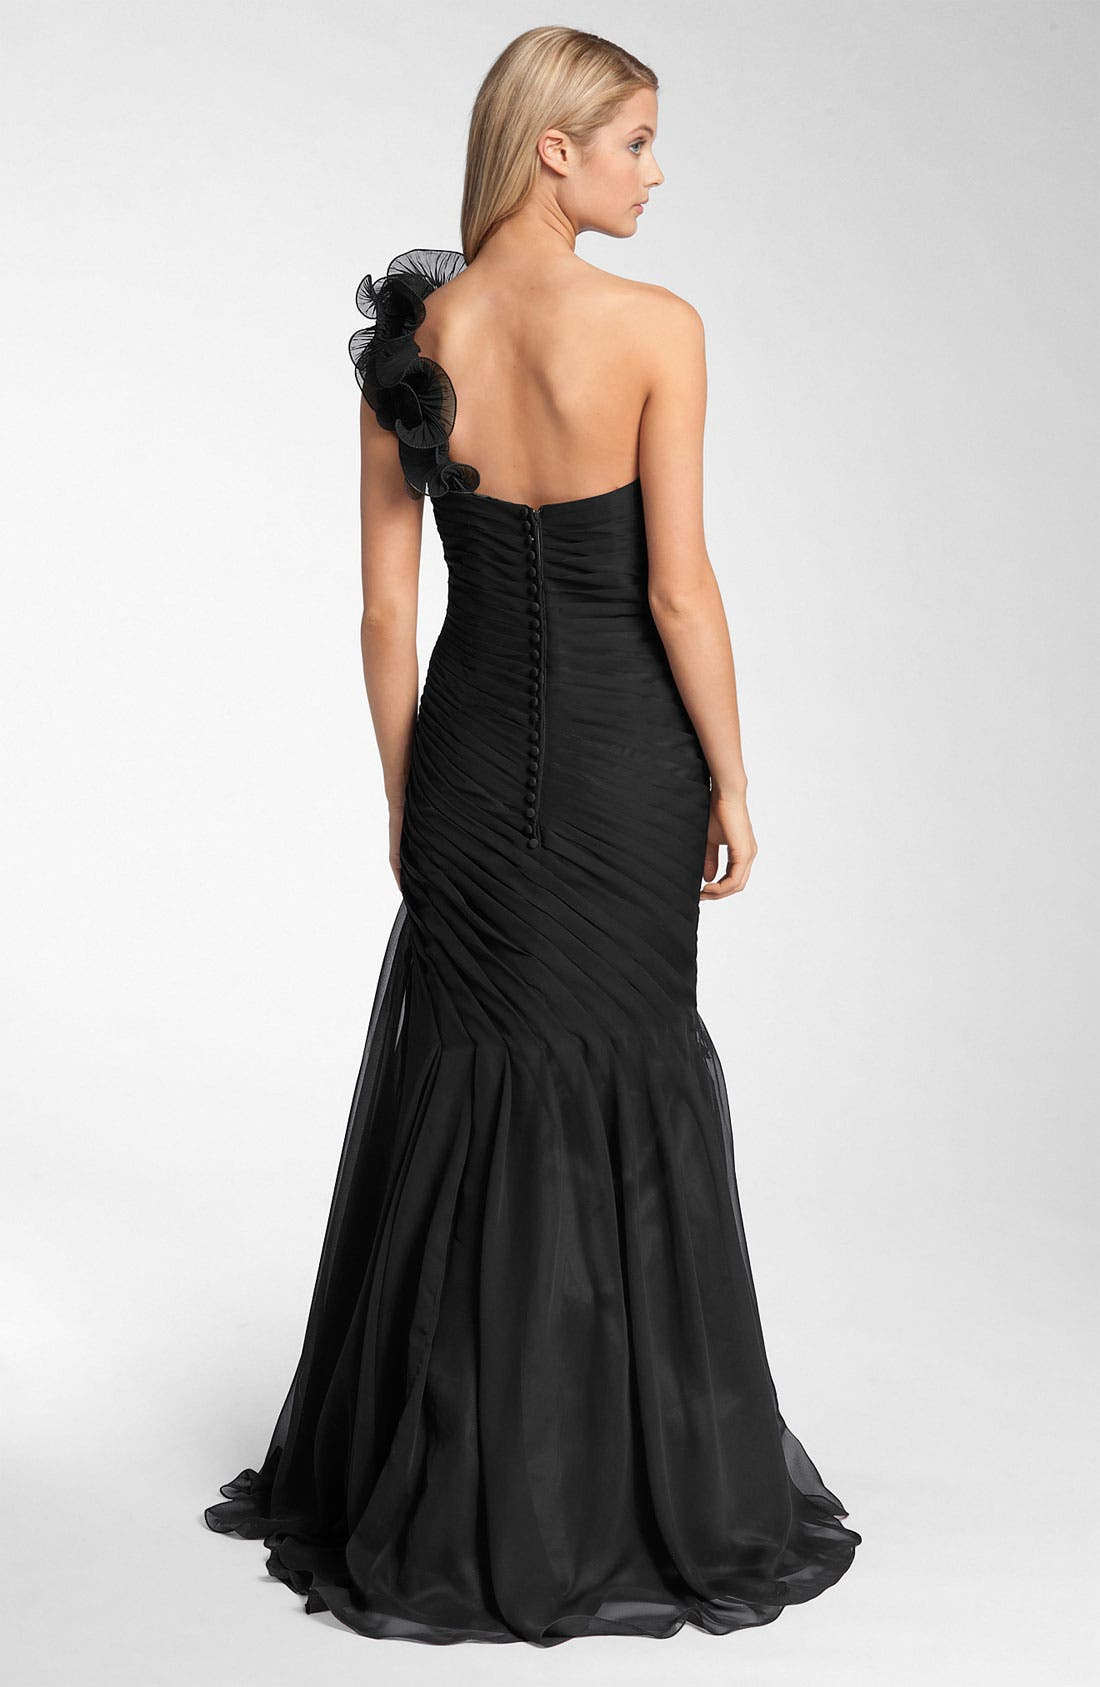 Veni Infantino Pleated One Shoulder Ruffle Gown,                             Alternate thumbnail 2, color,                             001